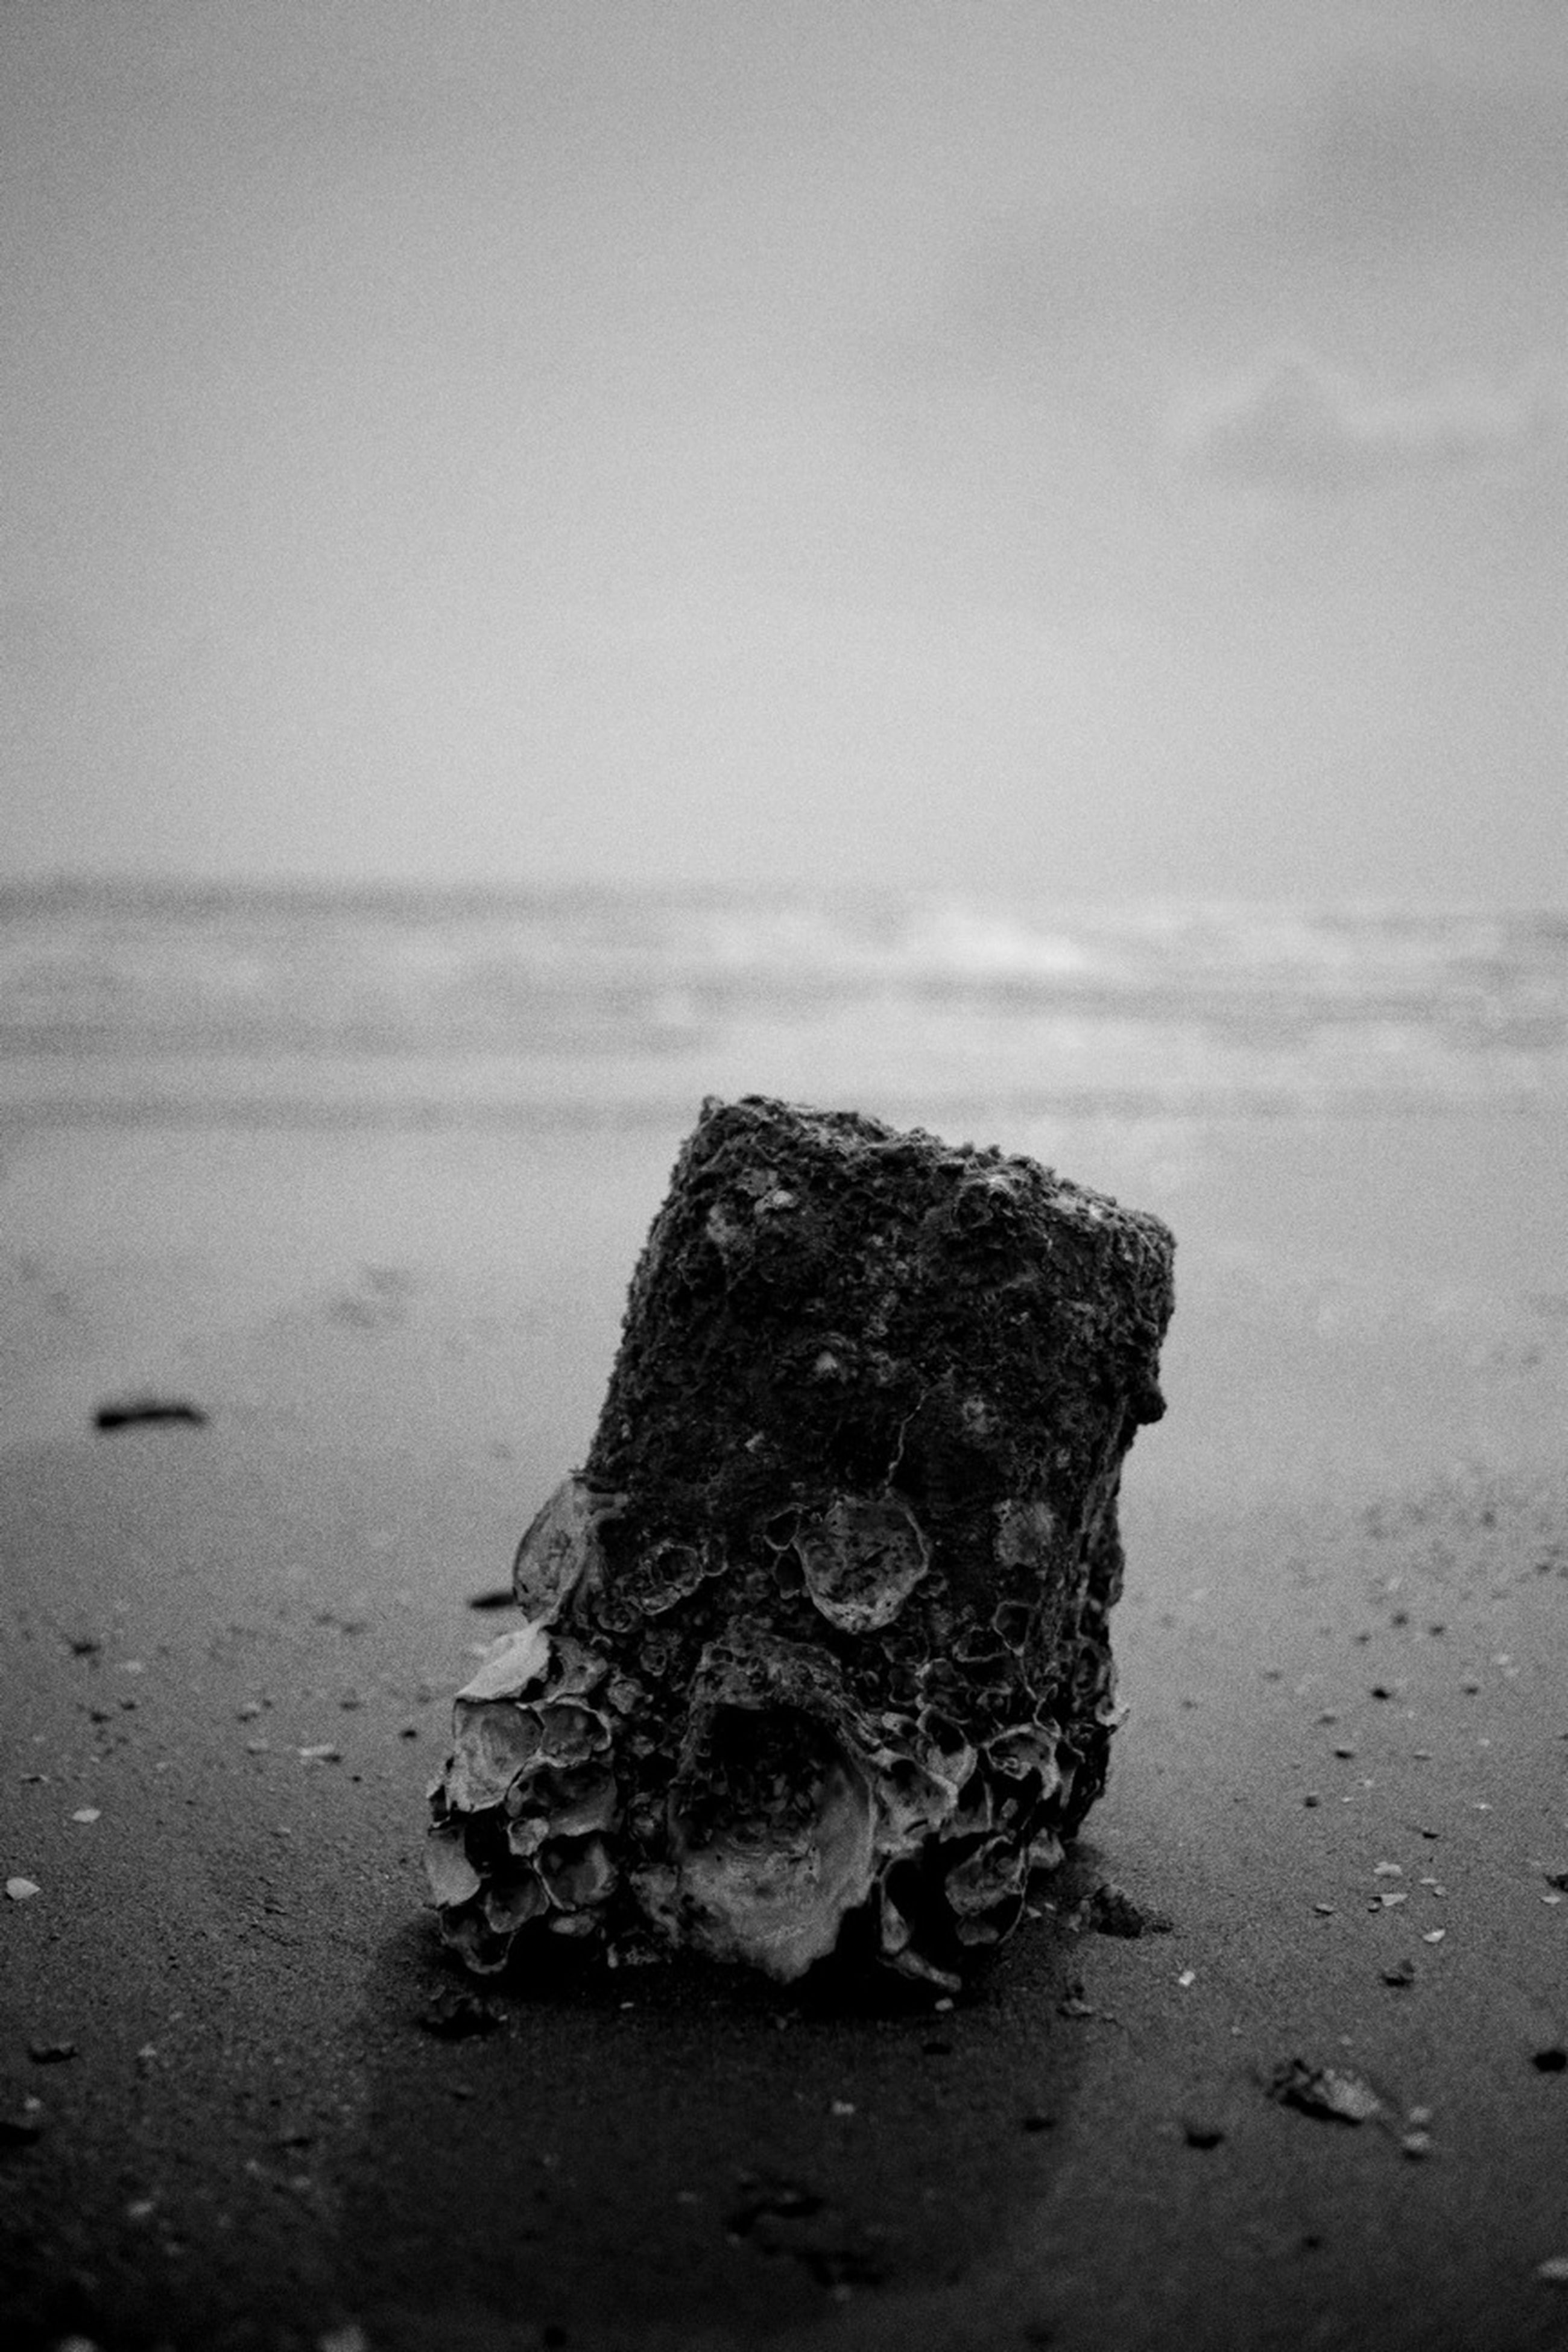 water, sea, horizon over water, beach, shore, tranquility, abandoned, nature, sky, rock - object, damaged, outdoors, no people, tranquil scene, close-up, day, sand, beauty in nature, old, deterioration